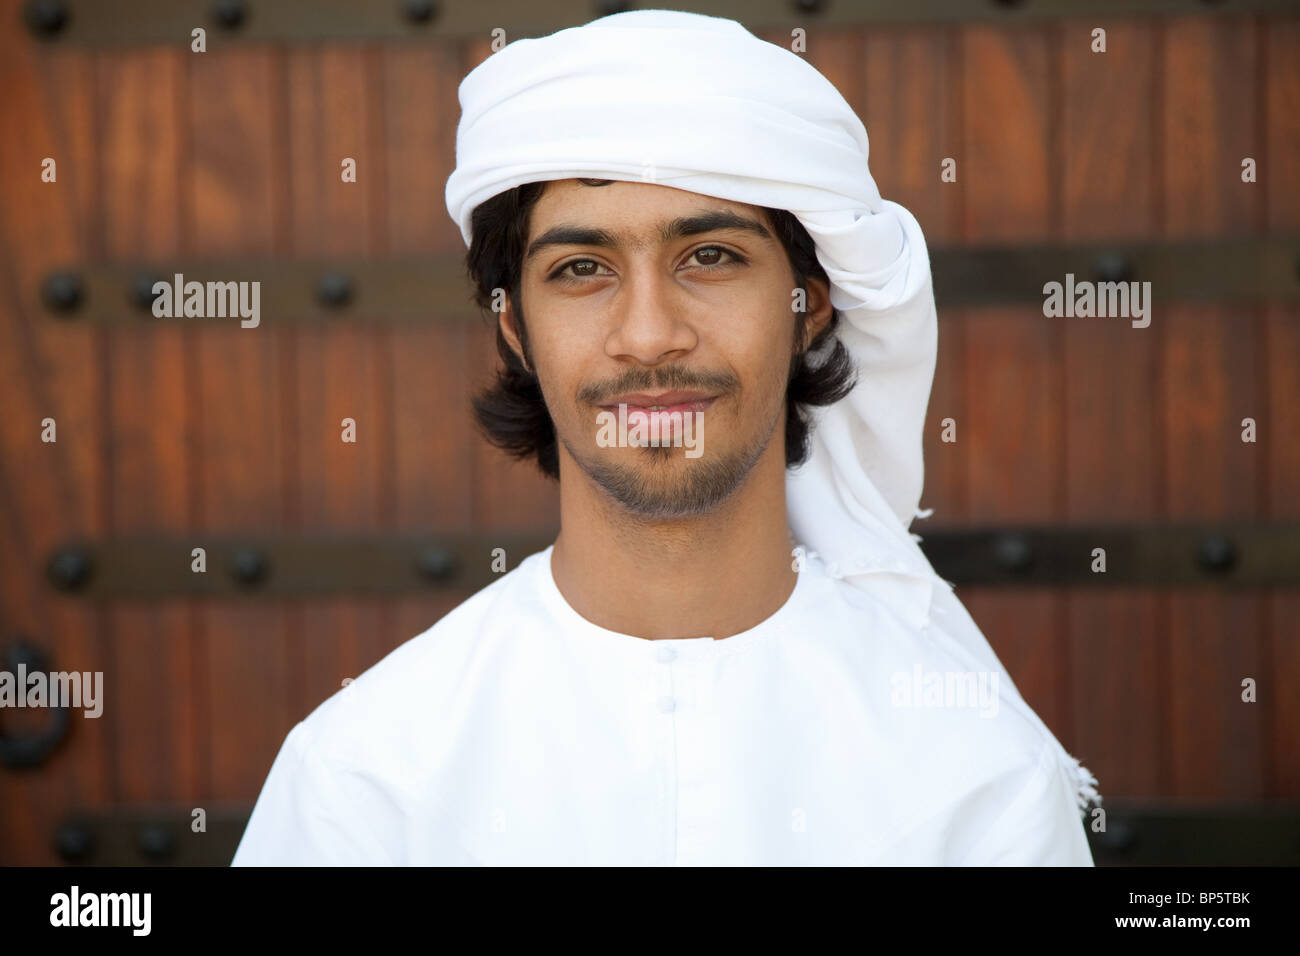 Middle Eastern man wearing headdress, portrait - Stock Image